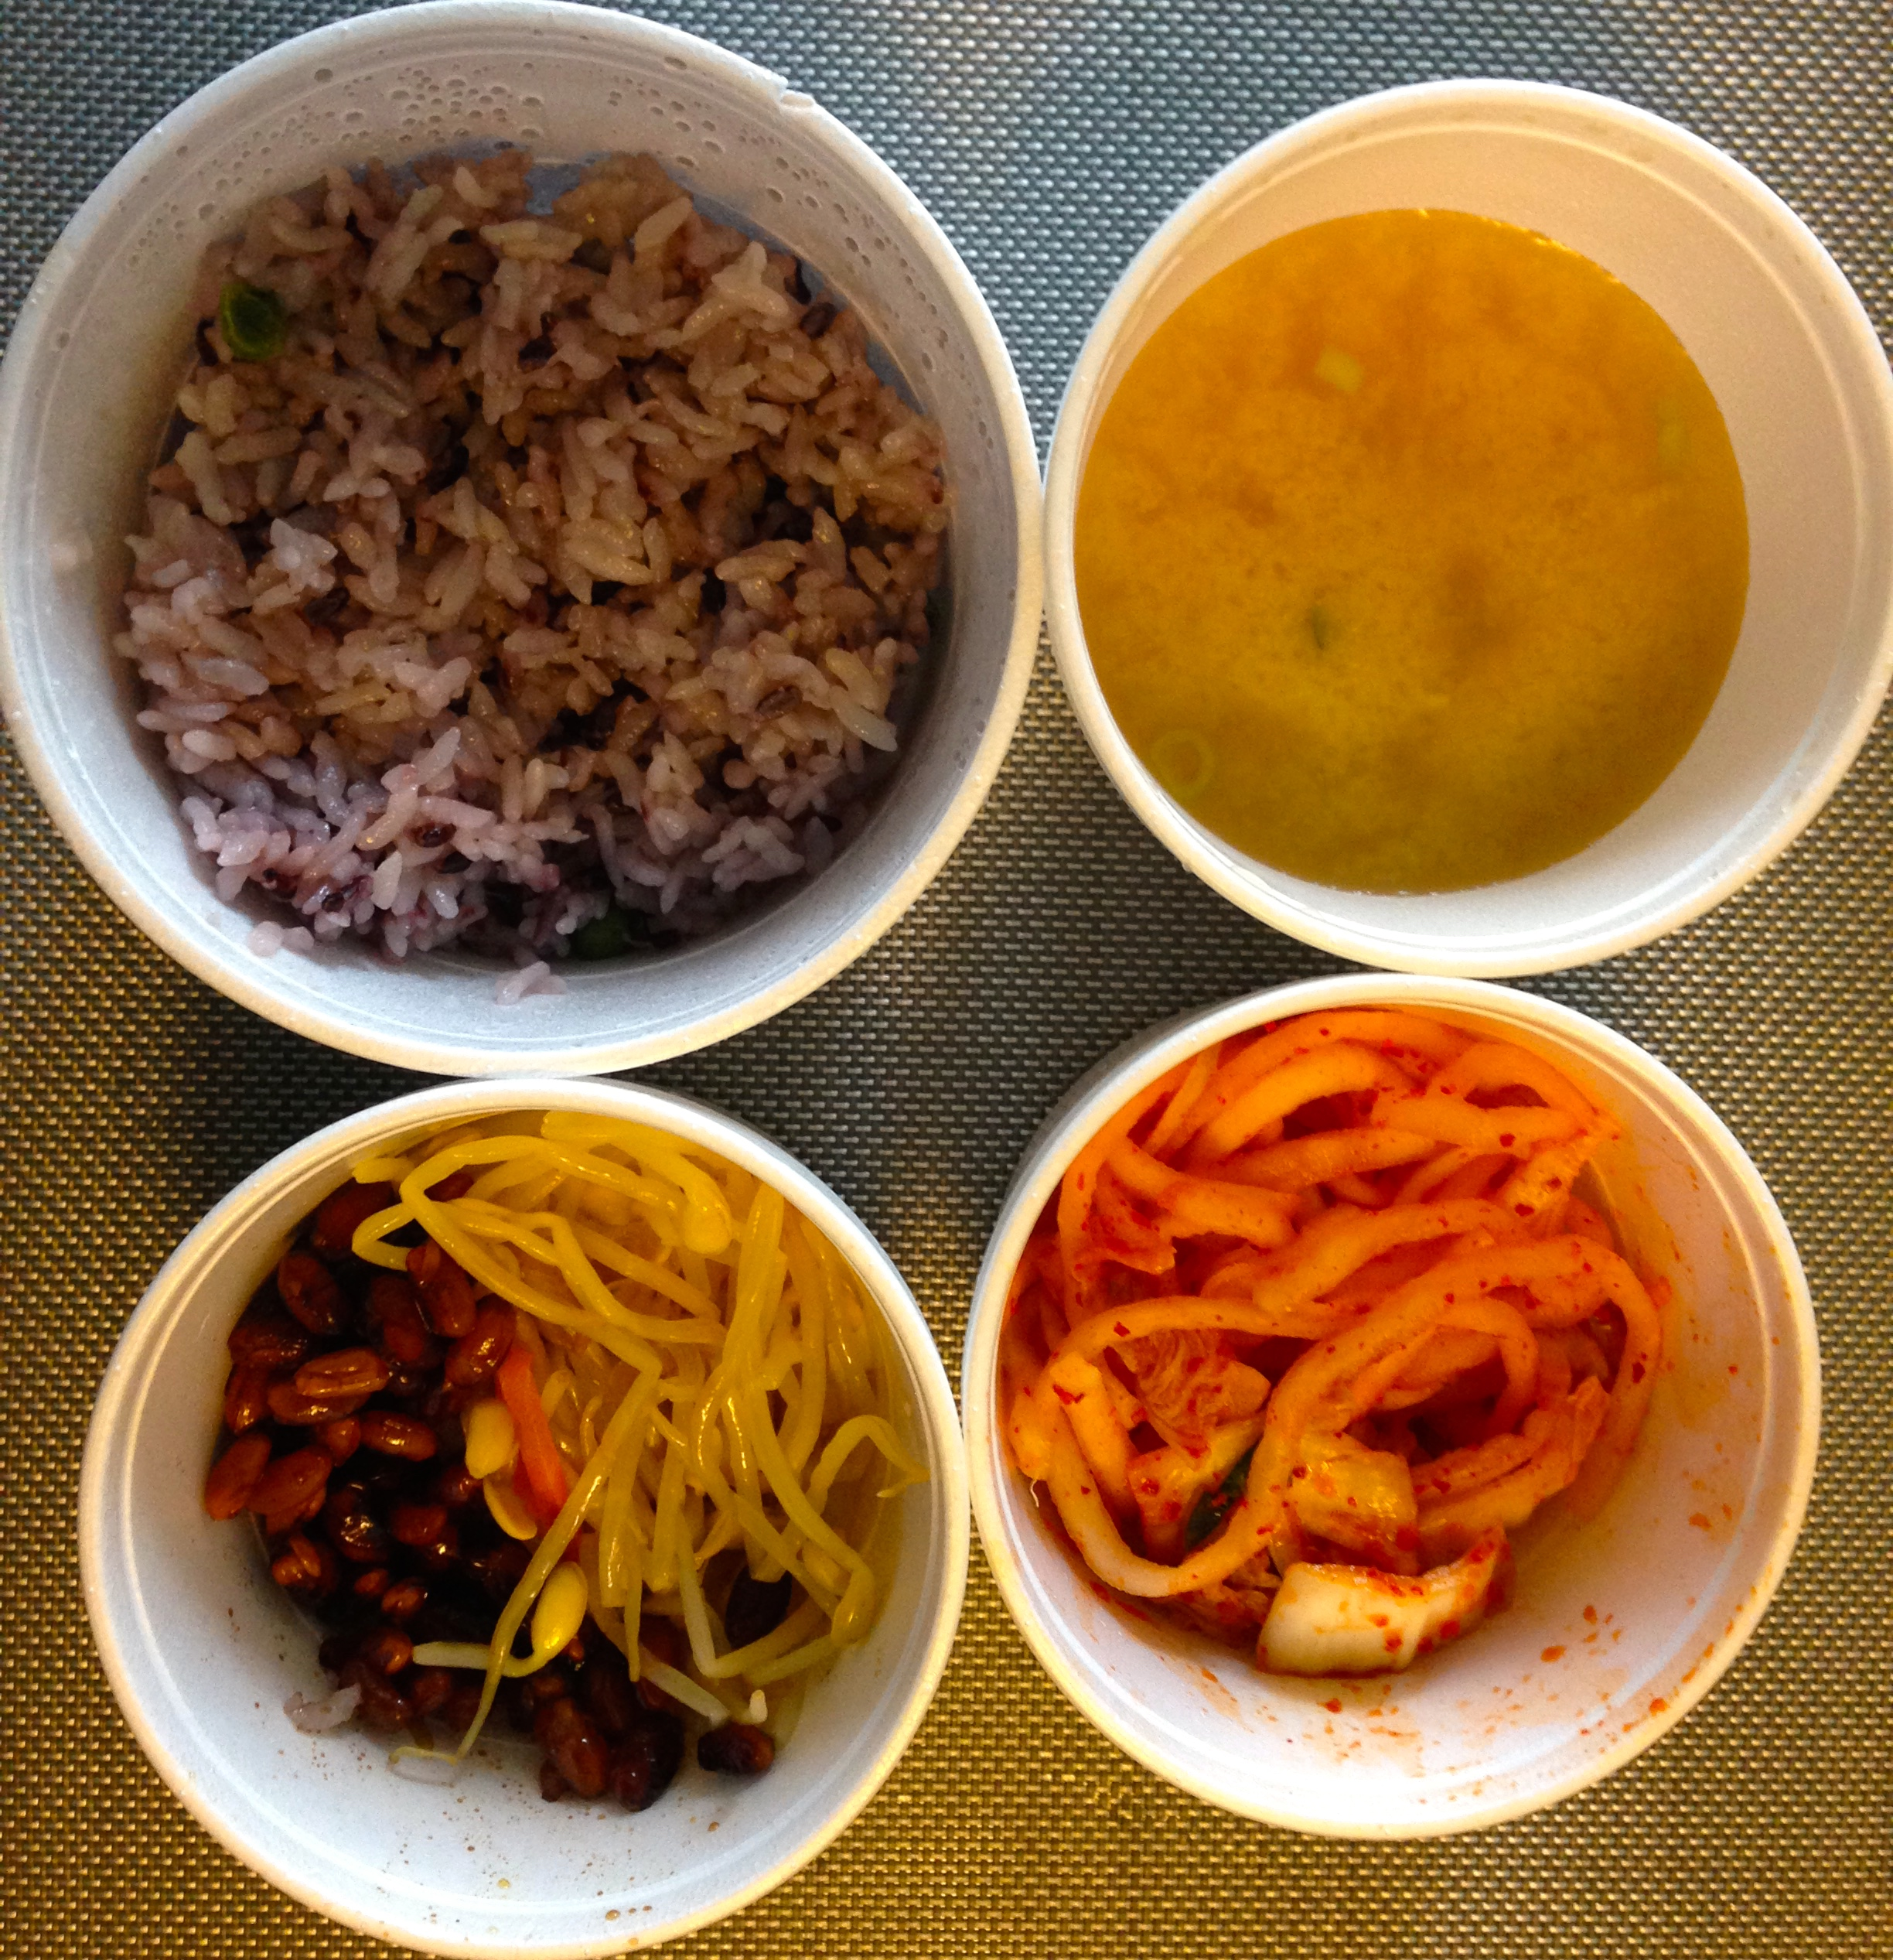 Kimchi, soup and side dishes from Buk Chang Dong Soon Tofu